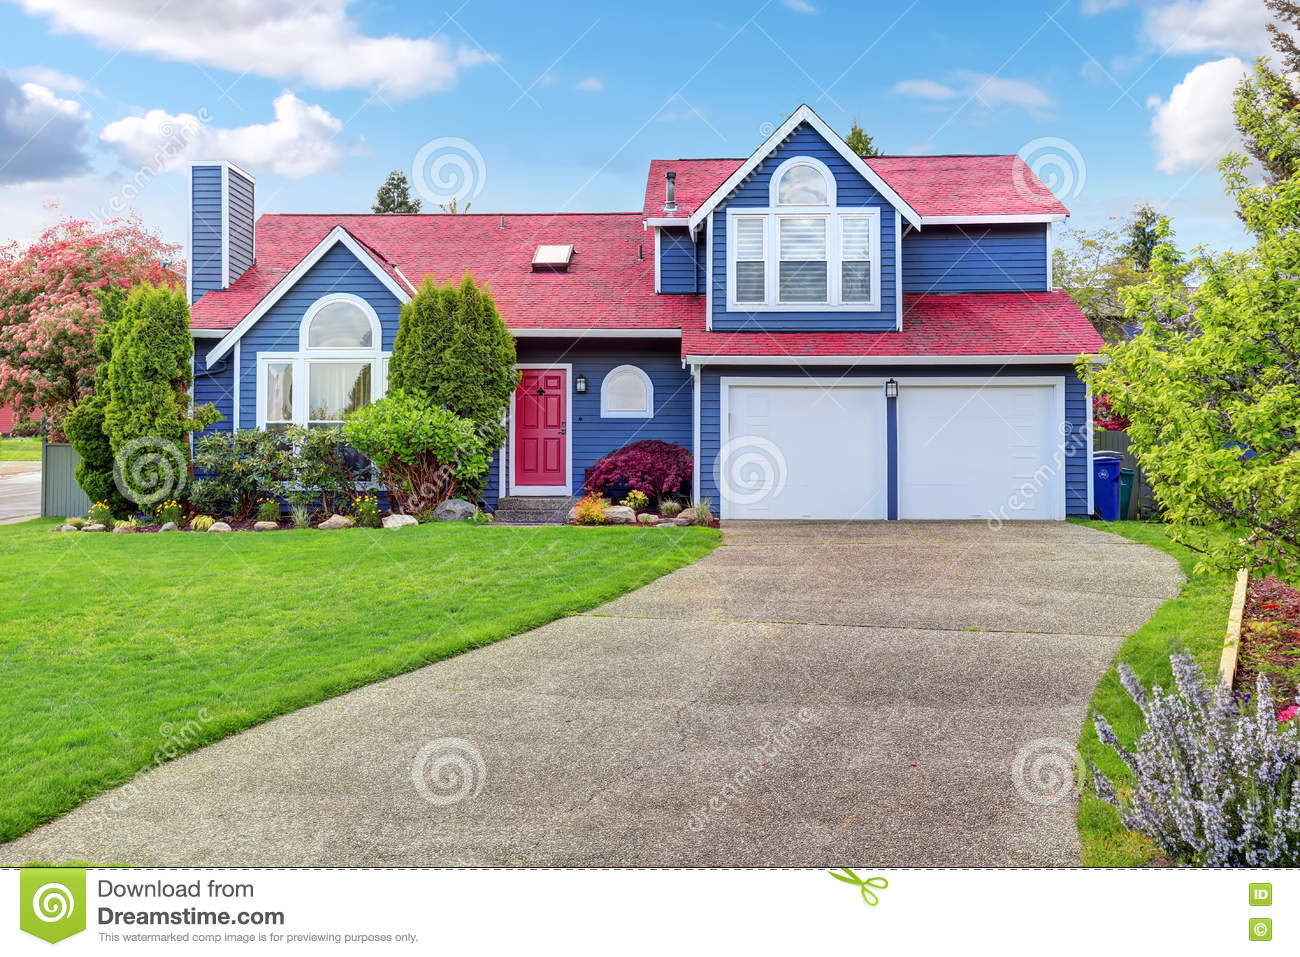 Beautiful Curb Appeal With Blue Exterior Paint And Red Roof ... on blue lighting designs, blue fireplace designs, blue basement designs, blue garden designs, blue interior designs, blue apartment designs, blue roof home designs, blue tile designs, gray interior home designs, blue bedroom designs, blue concrete designs,